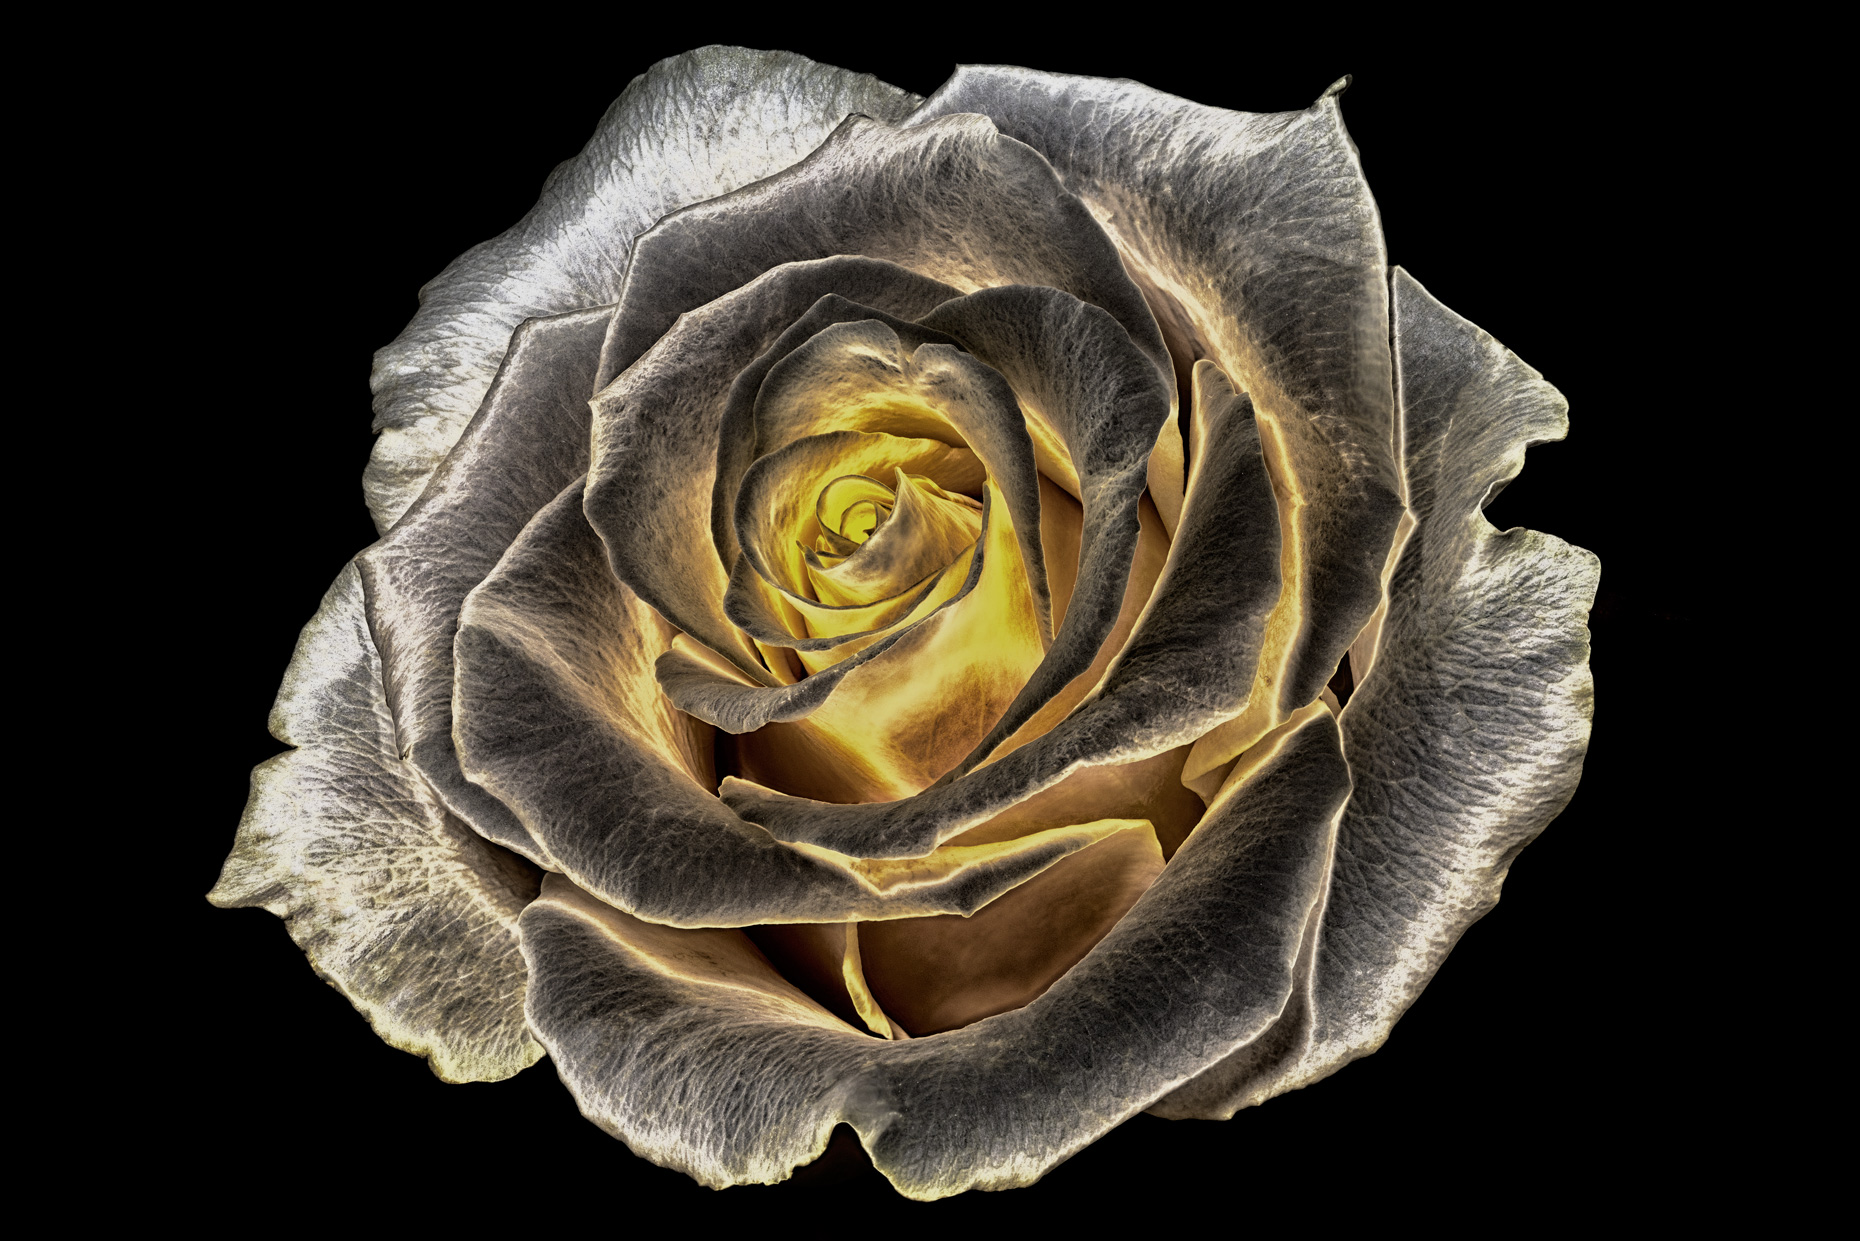 soft-orange-rose-v4-light-dark-contrastweb.jpg